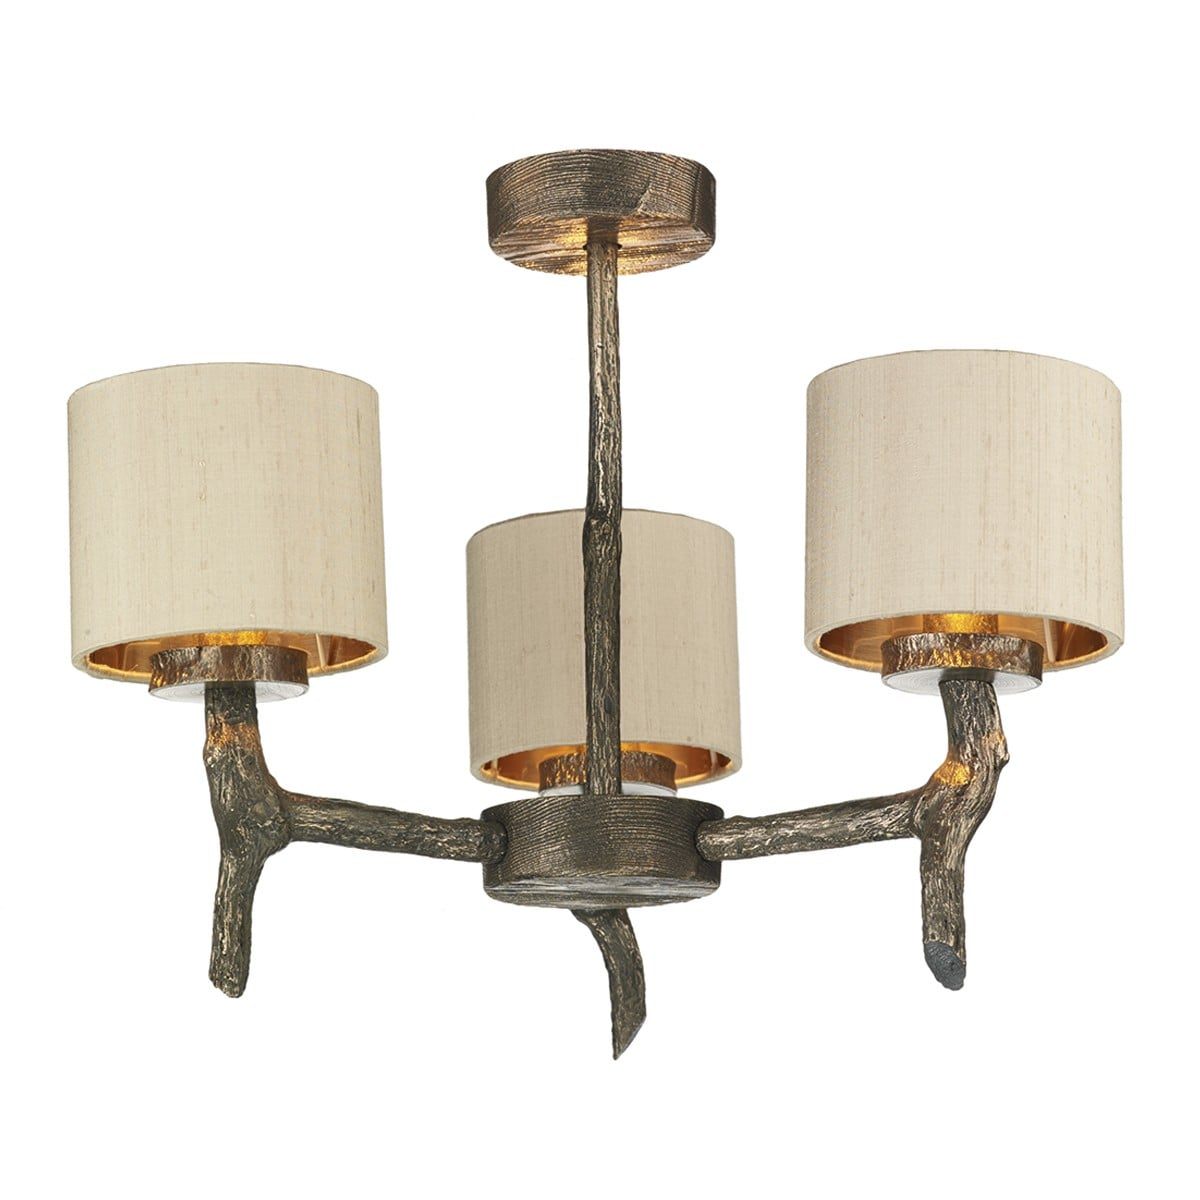 David Hunt Lighting JOS0301 Joshua 3 Light Dual Mount Pendant in Bronze withTaupe shades